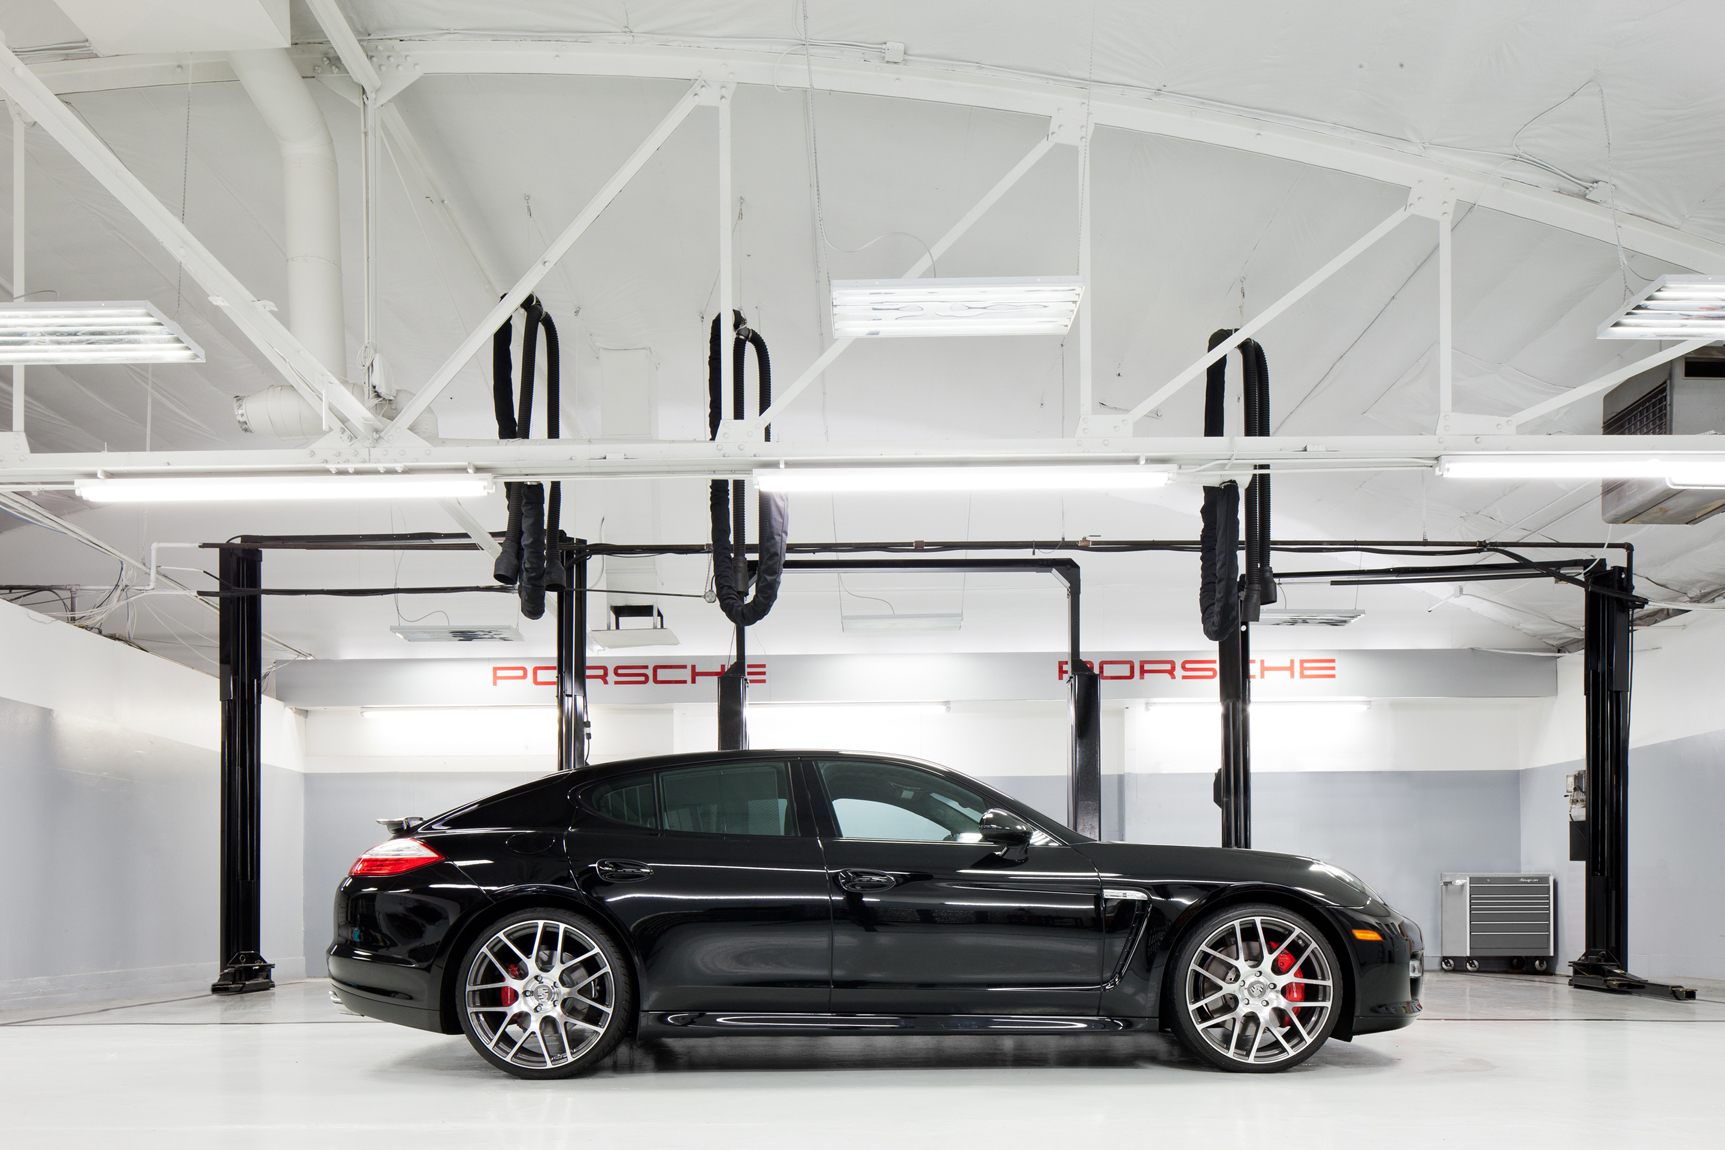 Interior high key, view of  black  Porsche Panamera in a service bay with white and gray walls.  Architectural Photography by: Paul Richer / RICHER IMAGES